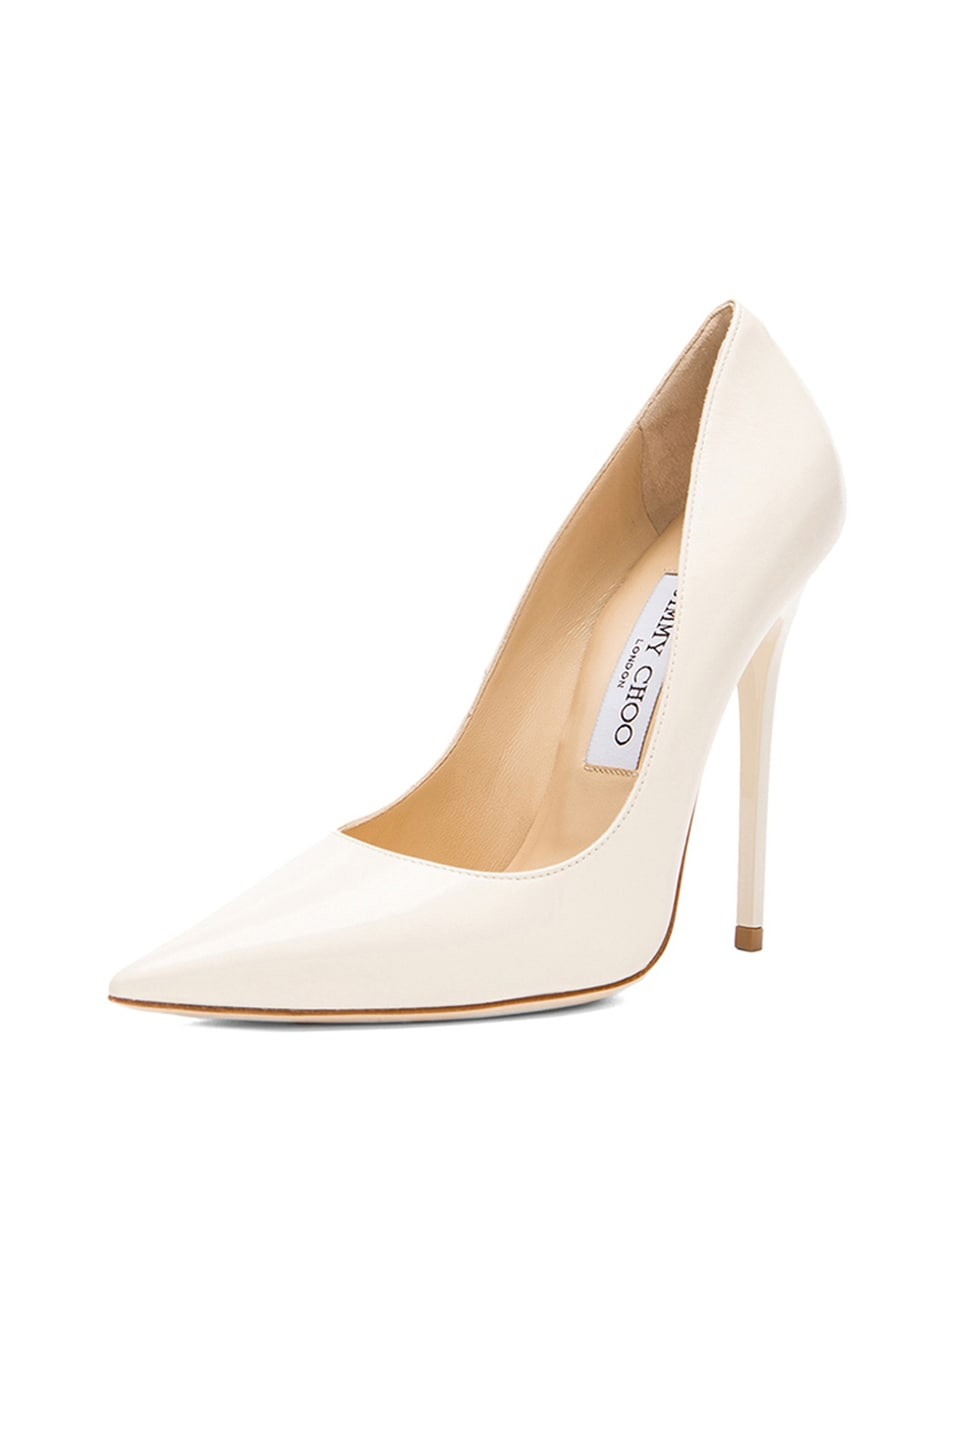 5fd29f541c3 Image 2 of Jimmy Choo Anouk Leather Pumps in Off White